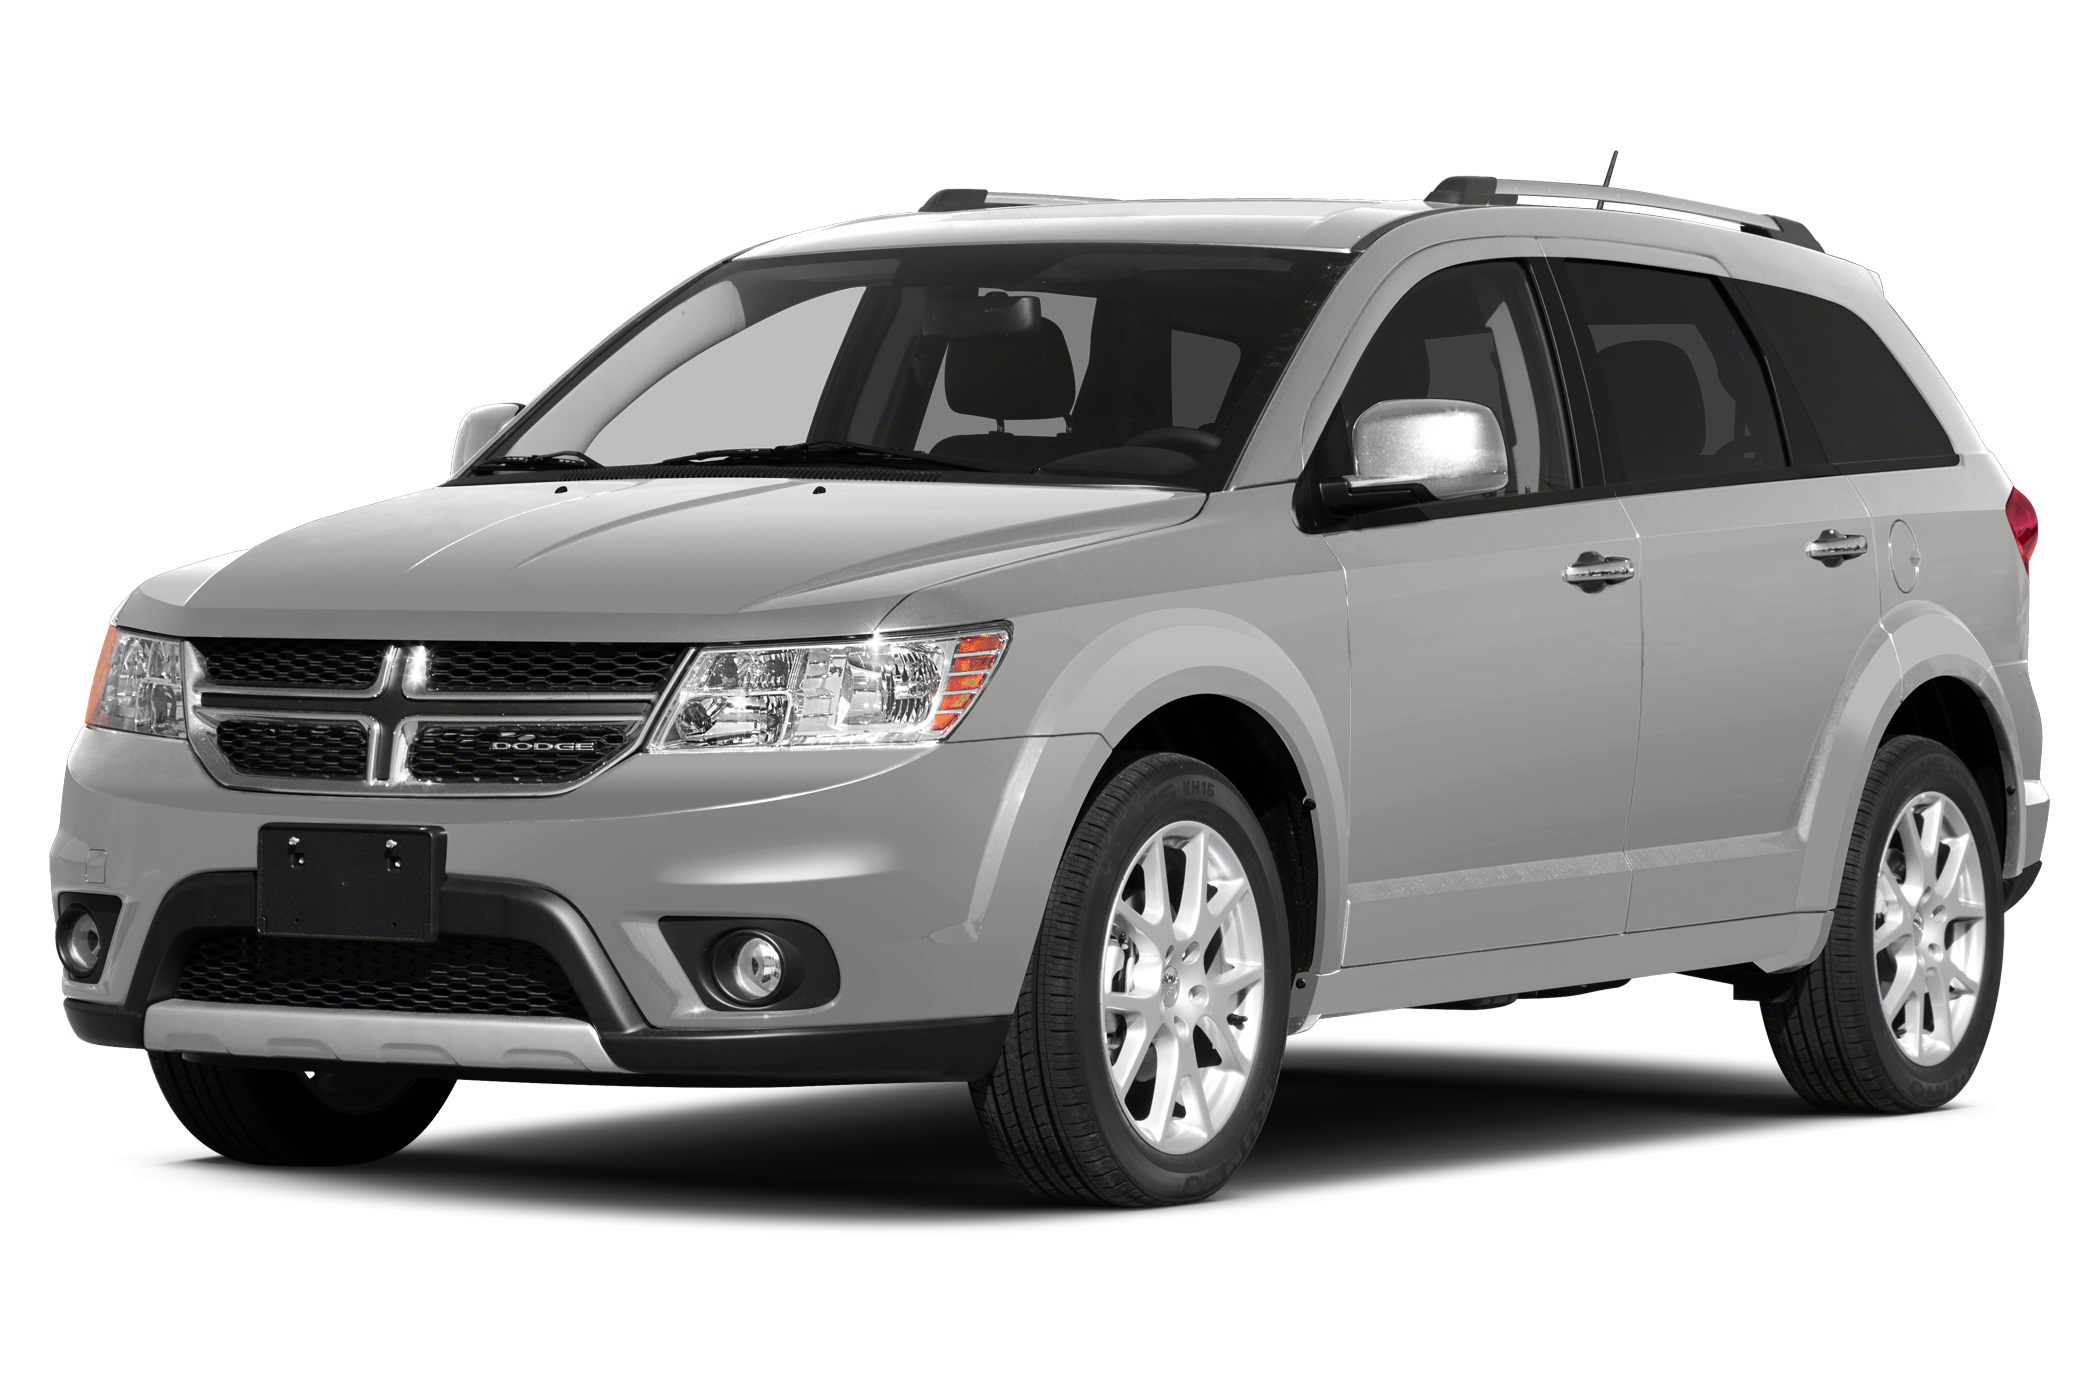 2014 Dodge Journey R/T SUV for sale in Woodville for $31,034 with 5 miles